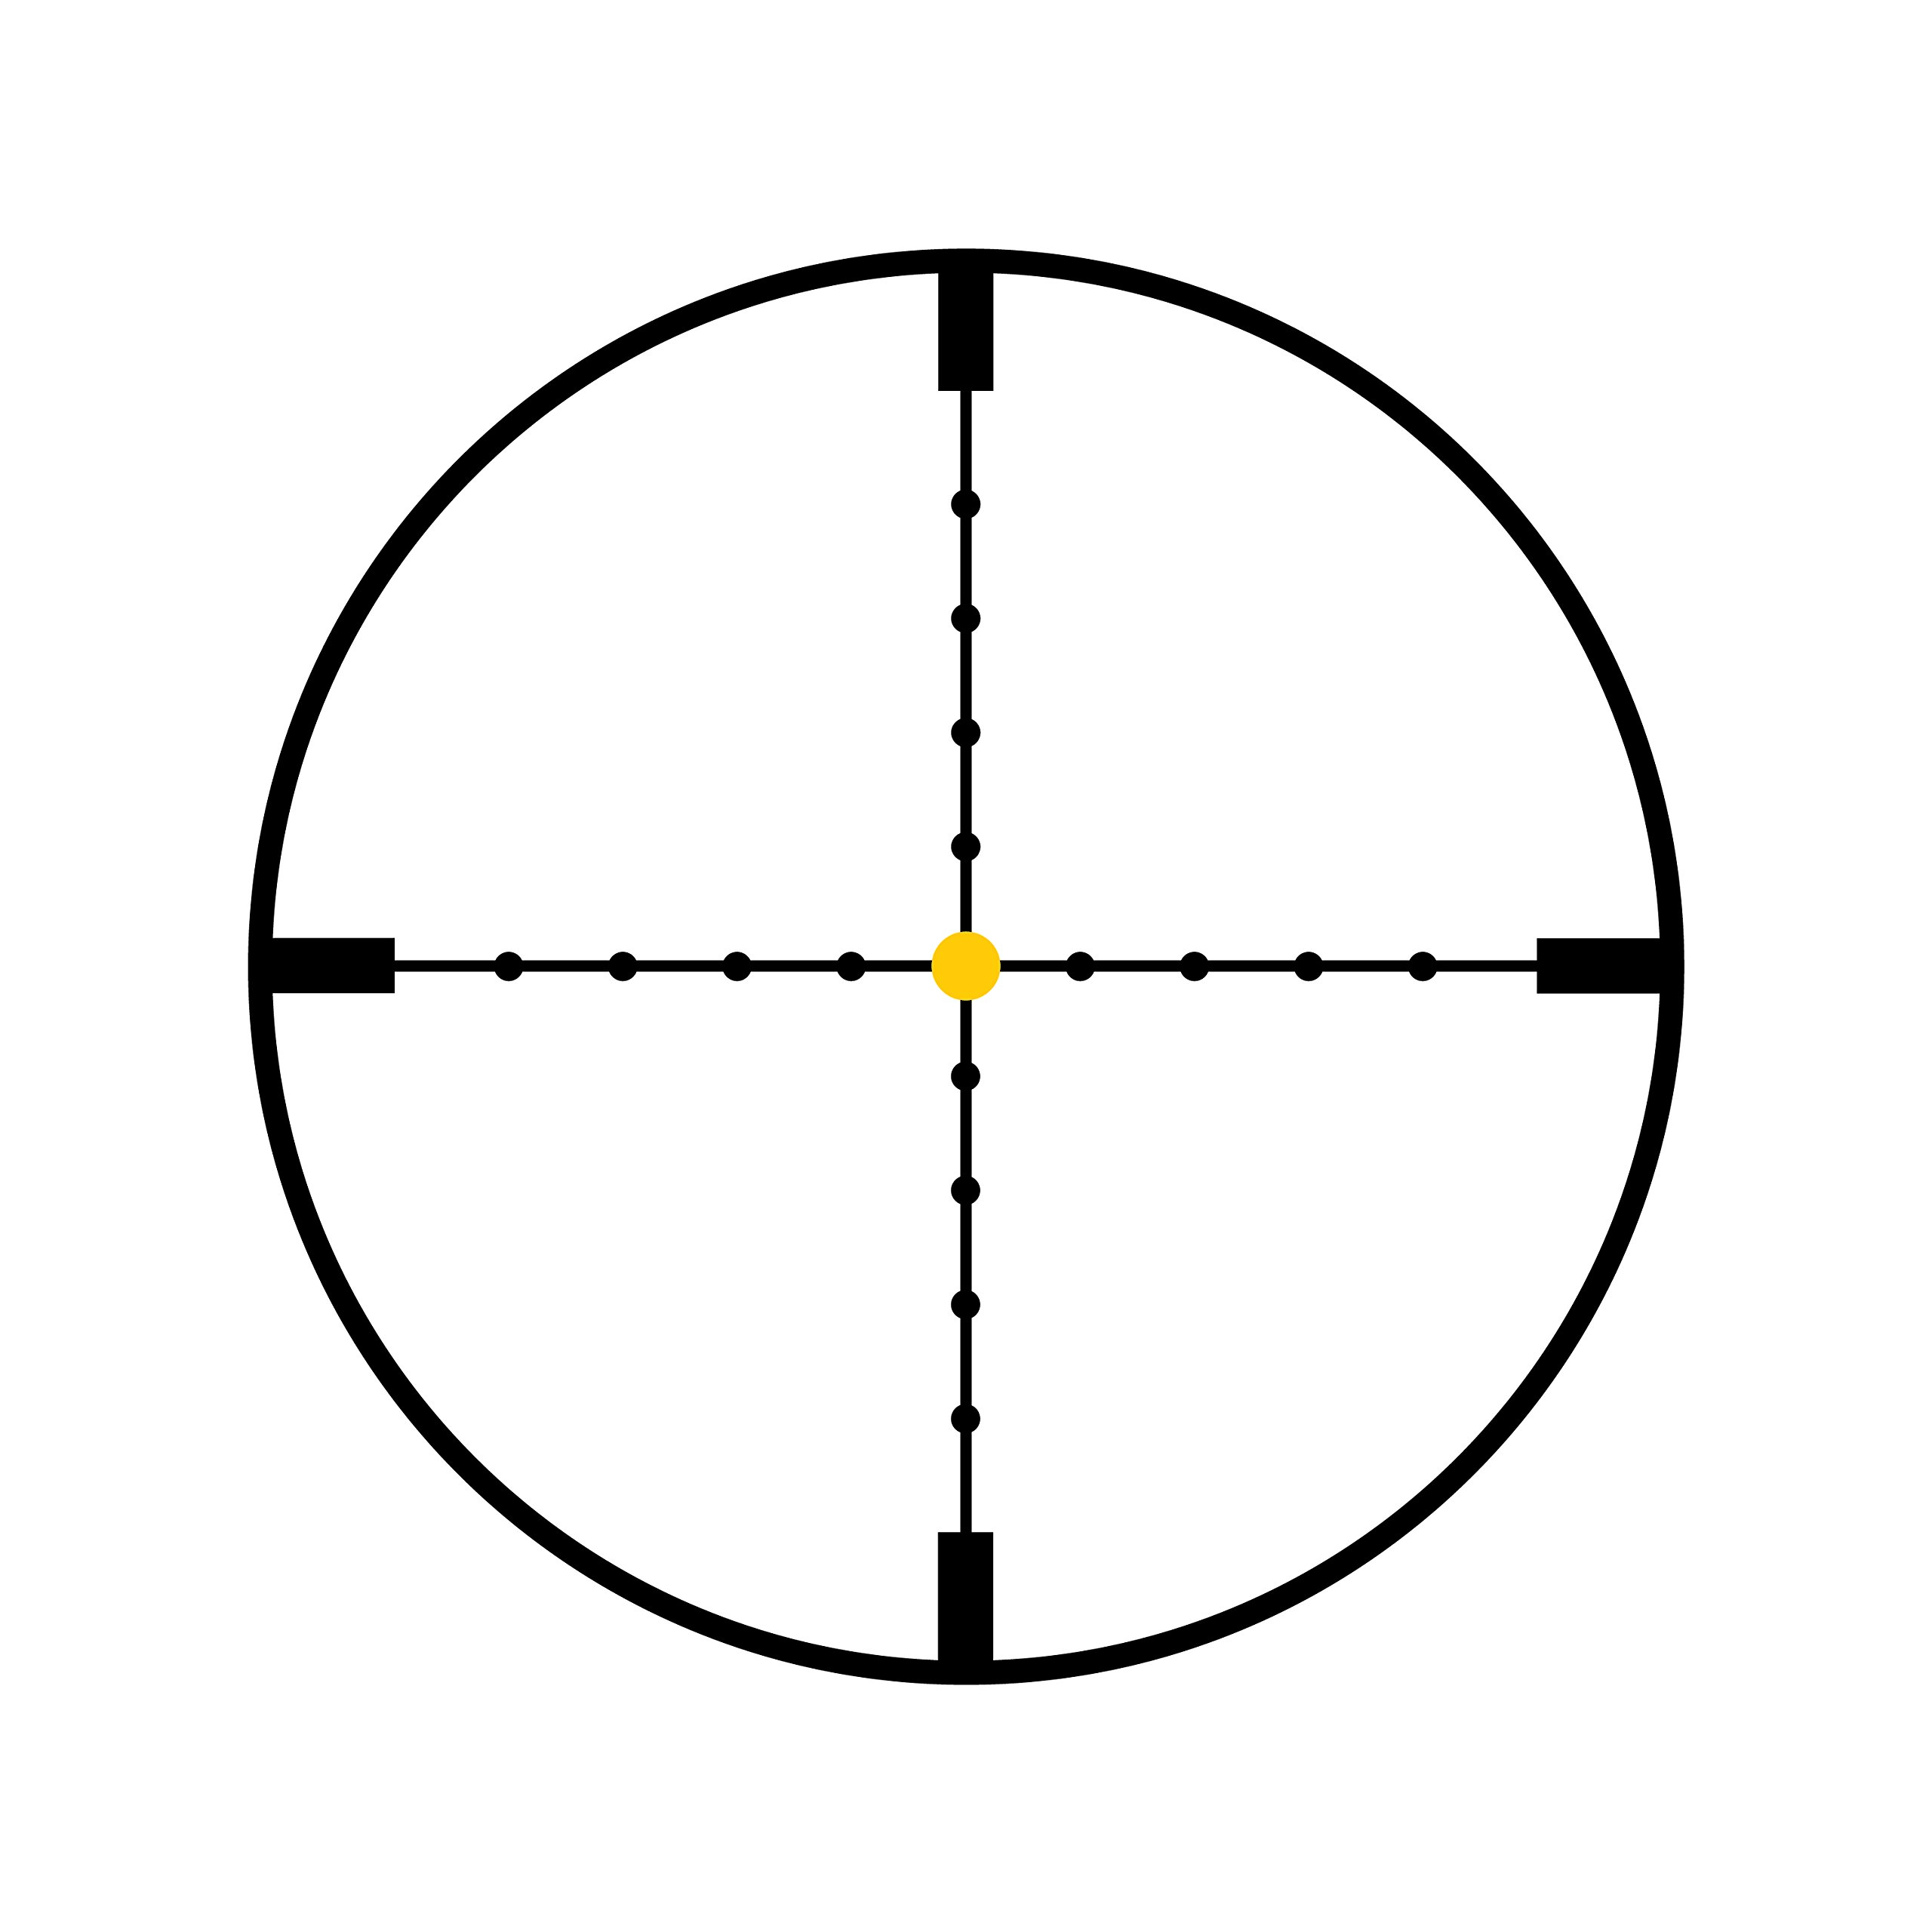 Trijicon TR22-2 AccuPoint 2.5-10x56mm Riflescope, 30mm Main Tube, Mil-Dot Crosshair Reticle with Amber Dot, Main Tube by Trijicon